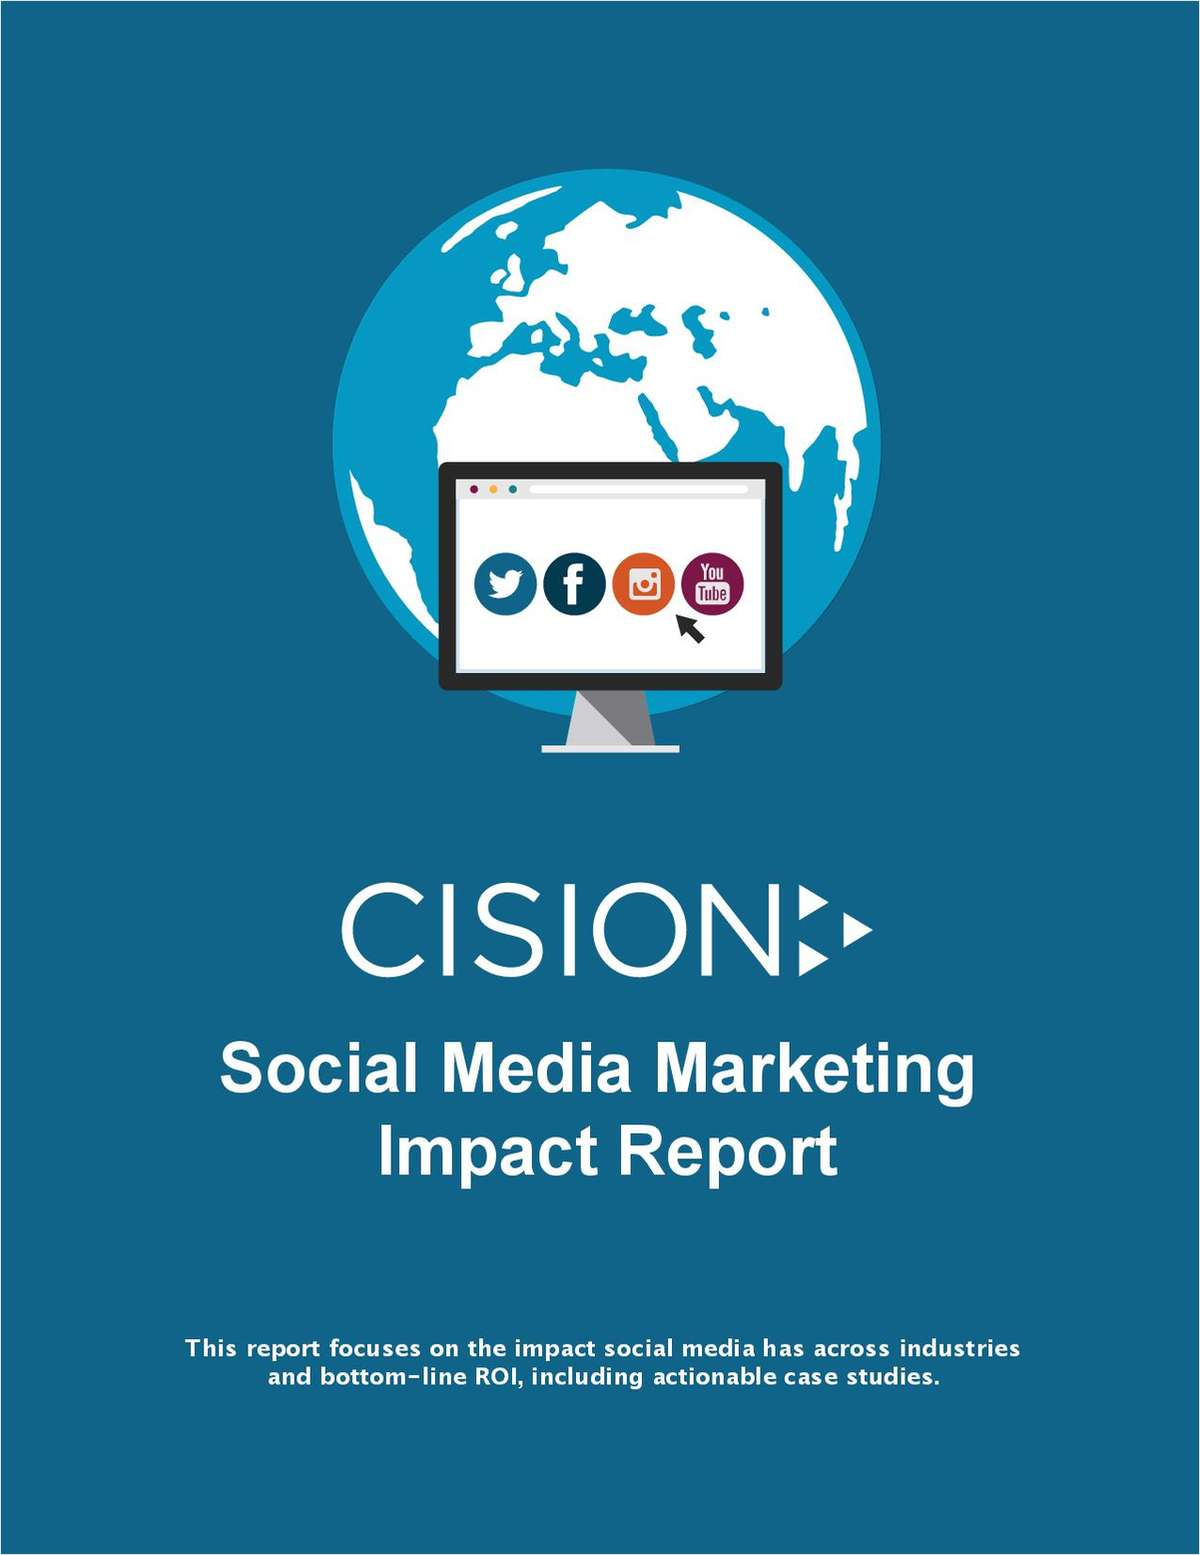 research papers on social media marketing Find the latest social media marketing white papers and case studies from leading experts browse through the directory of free social media marketing publications.